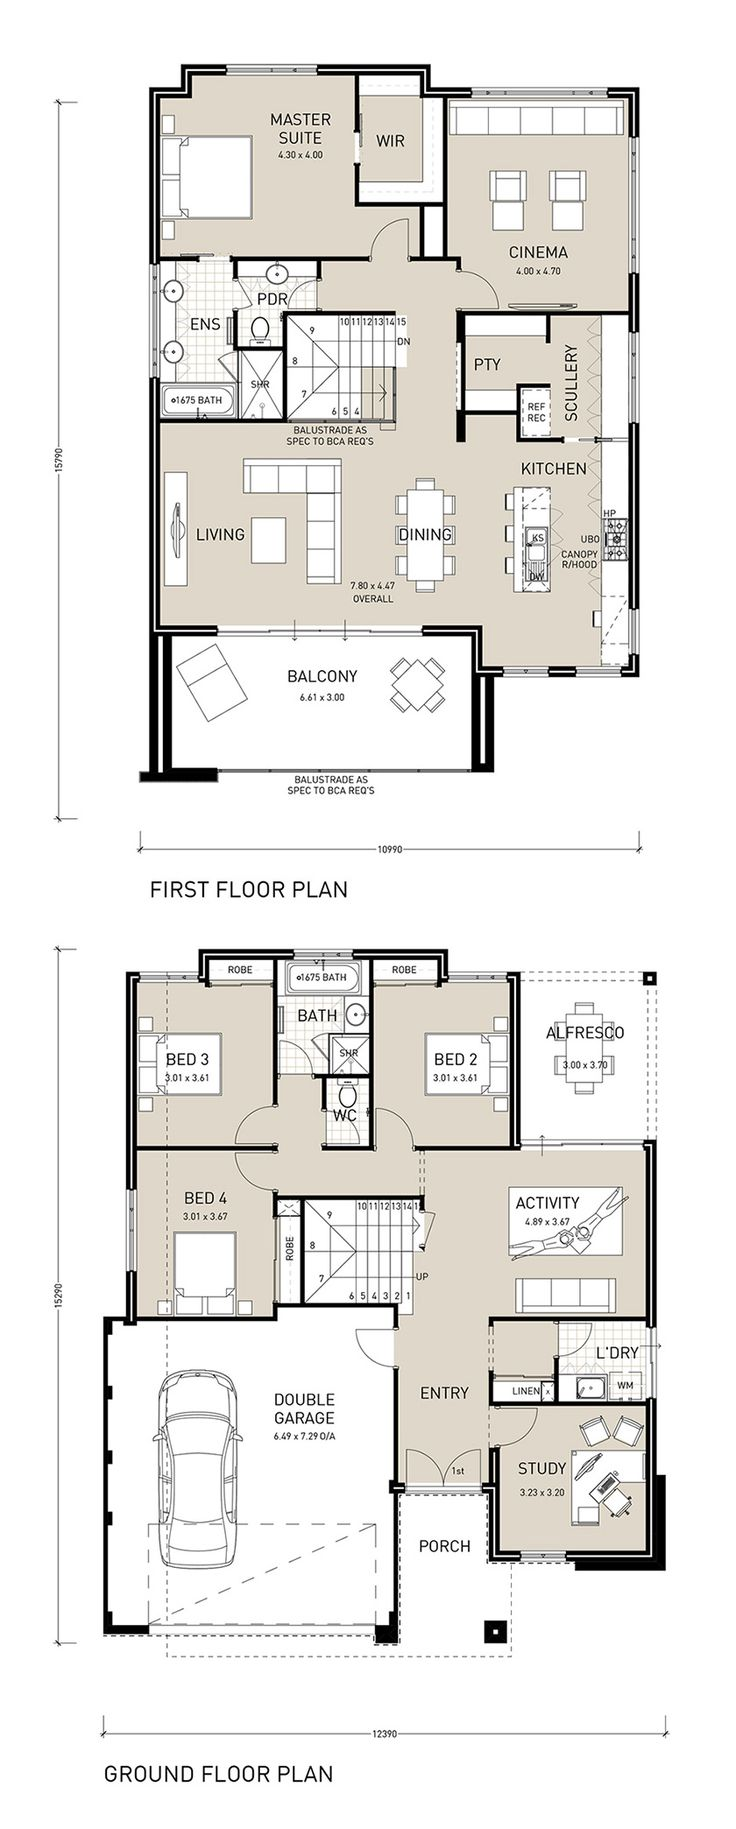 31 best reverse living house plans images on pinterest Reverse living home plans